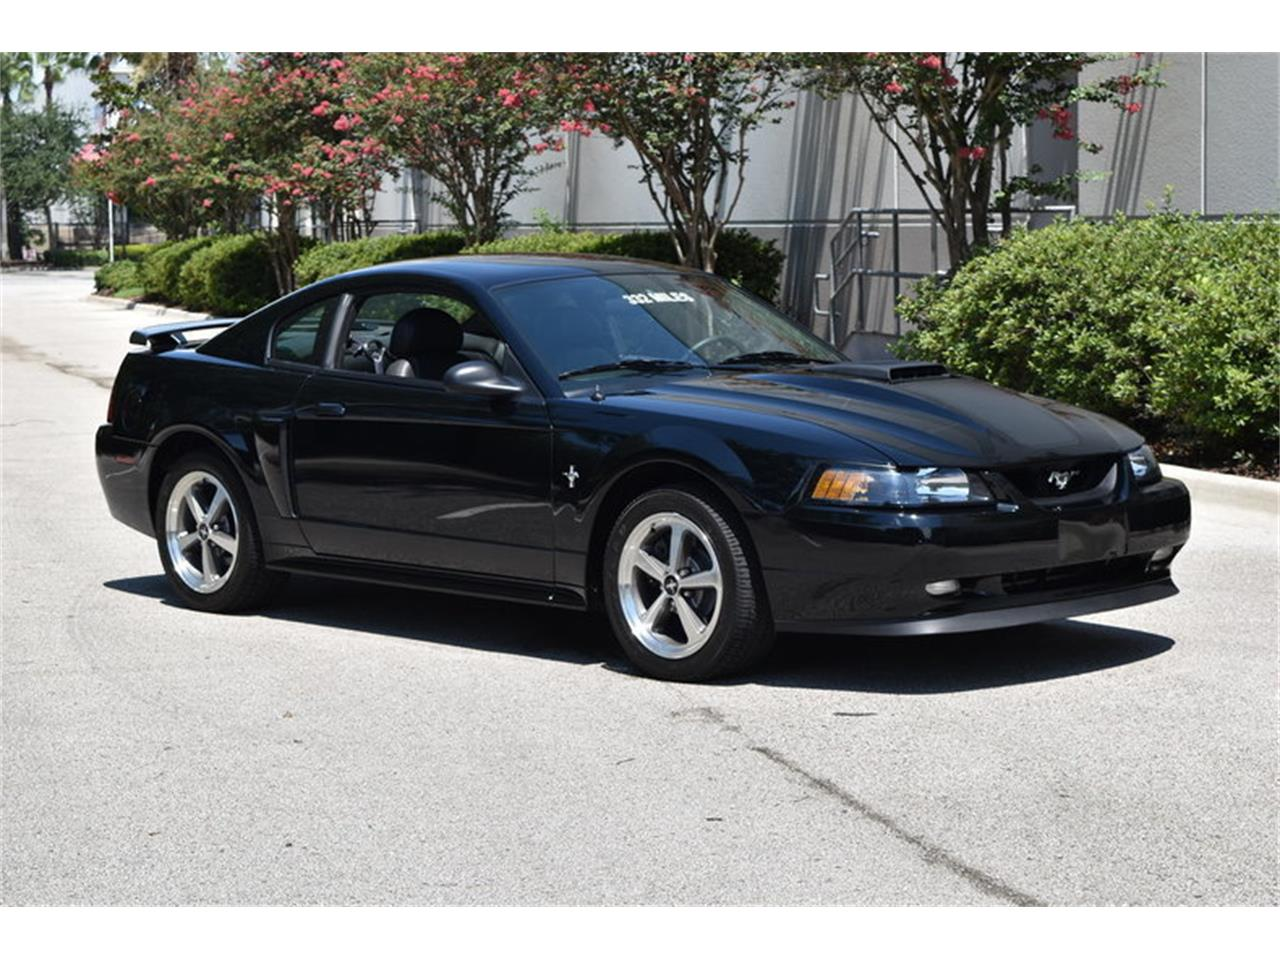 Large picture of 03 mustang onid